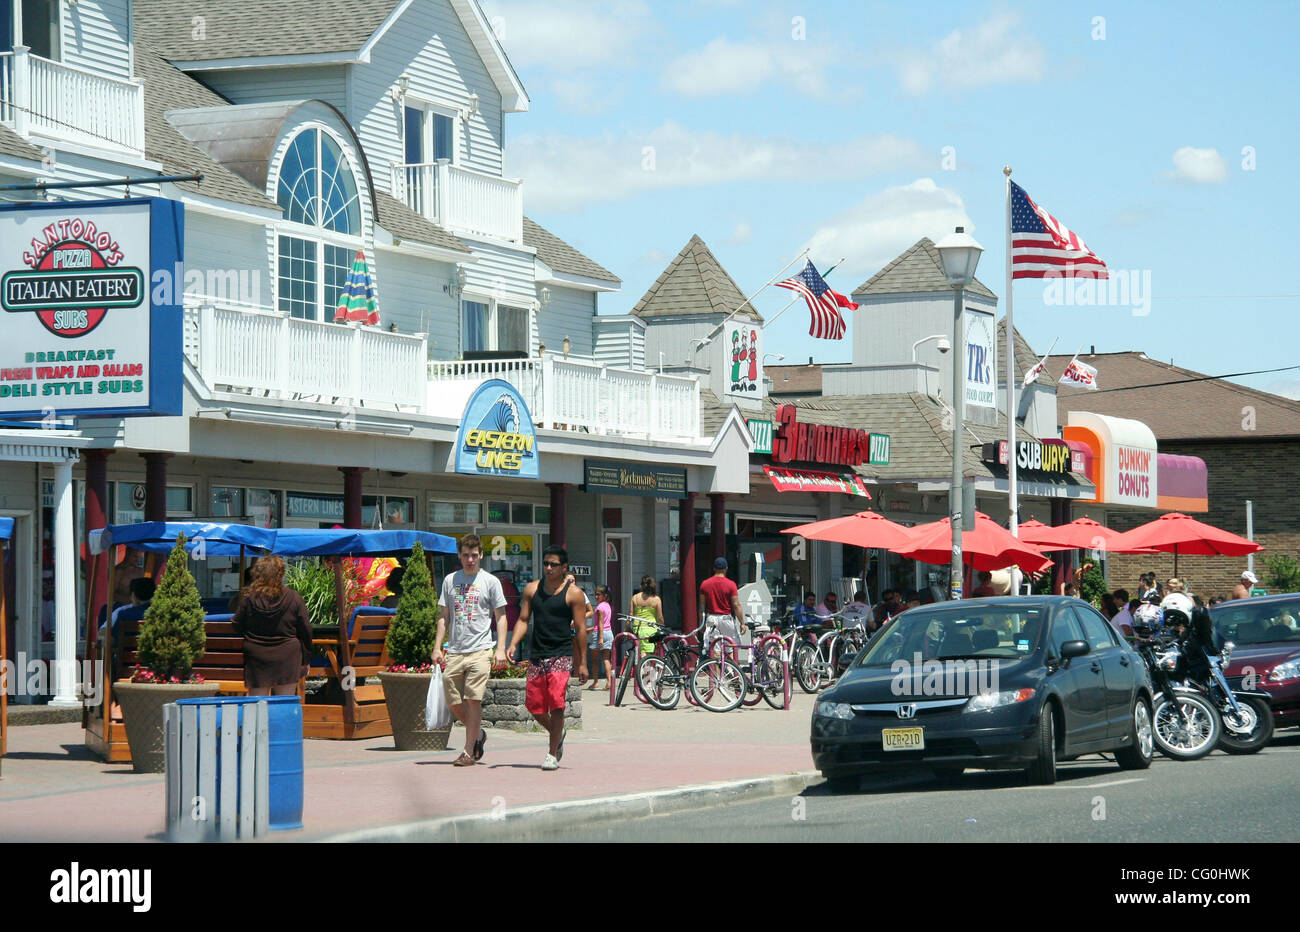 Jul   Belmar Nj Usa Belmar Beach Is Among The Most Popular Surf Spots On The Jersey Shore And East Coast Belmar Frequently Hosts Surfing